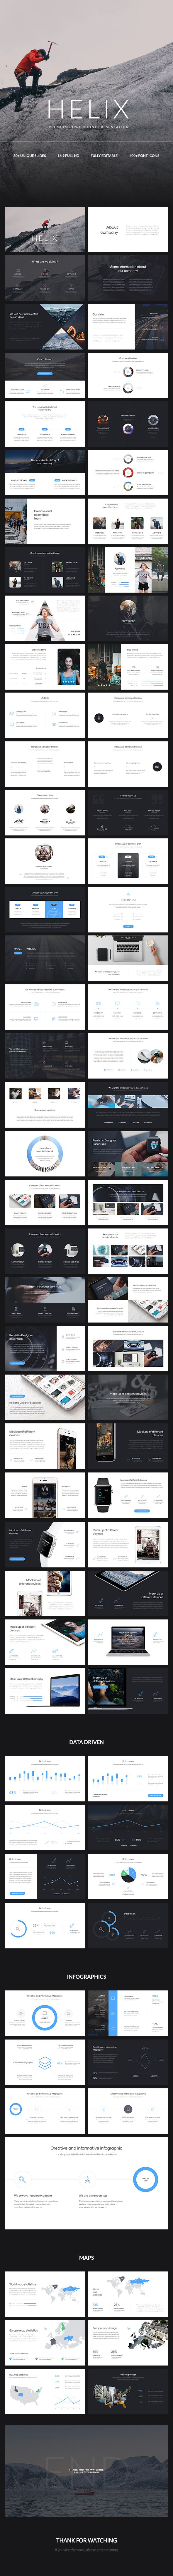 Helix PowerPoint Presentation  #deck #design #digital • Available here → http://graphicriver.net/item/helix-powerpoint-presentation/15473833?ref=pxcr